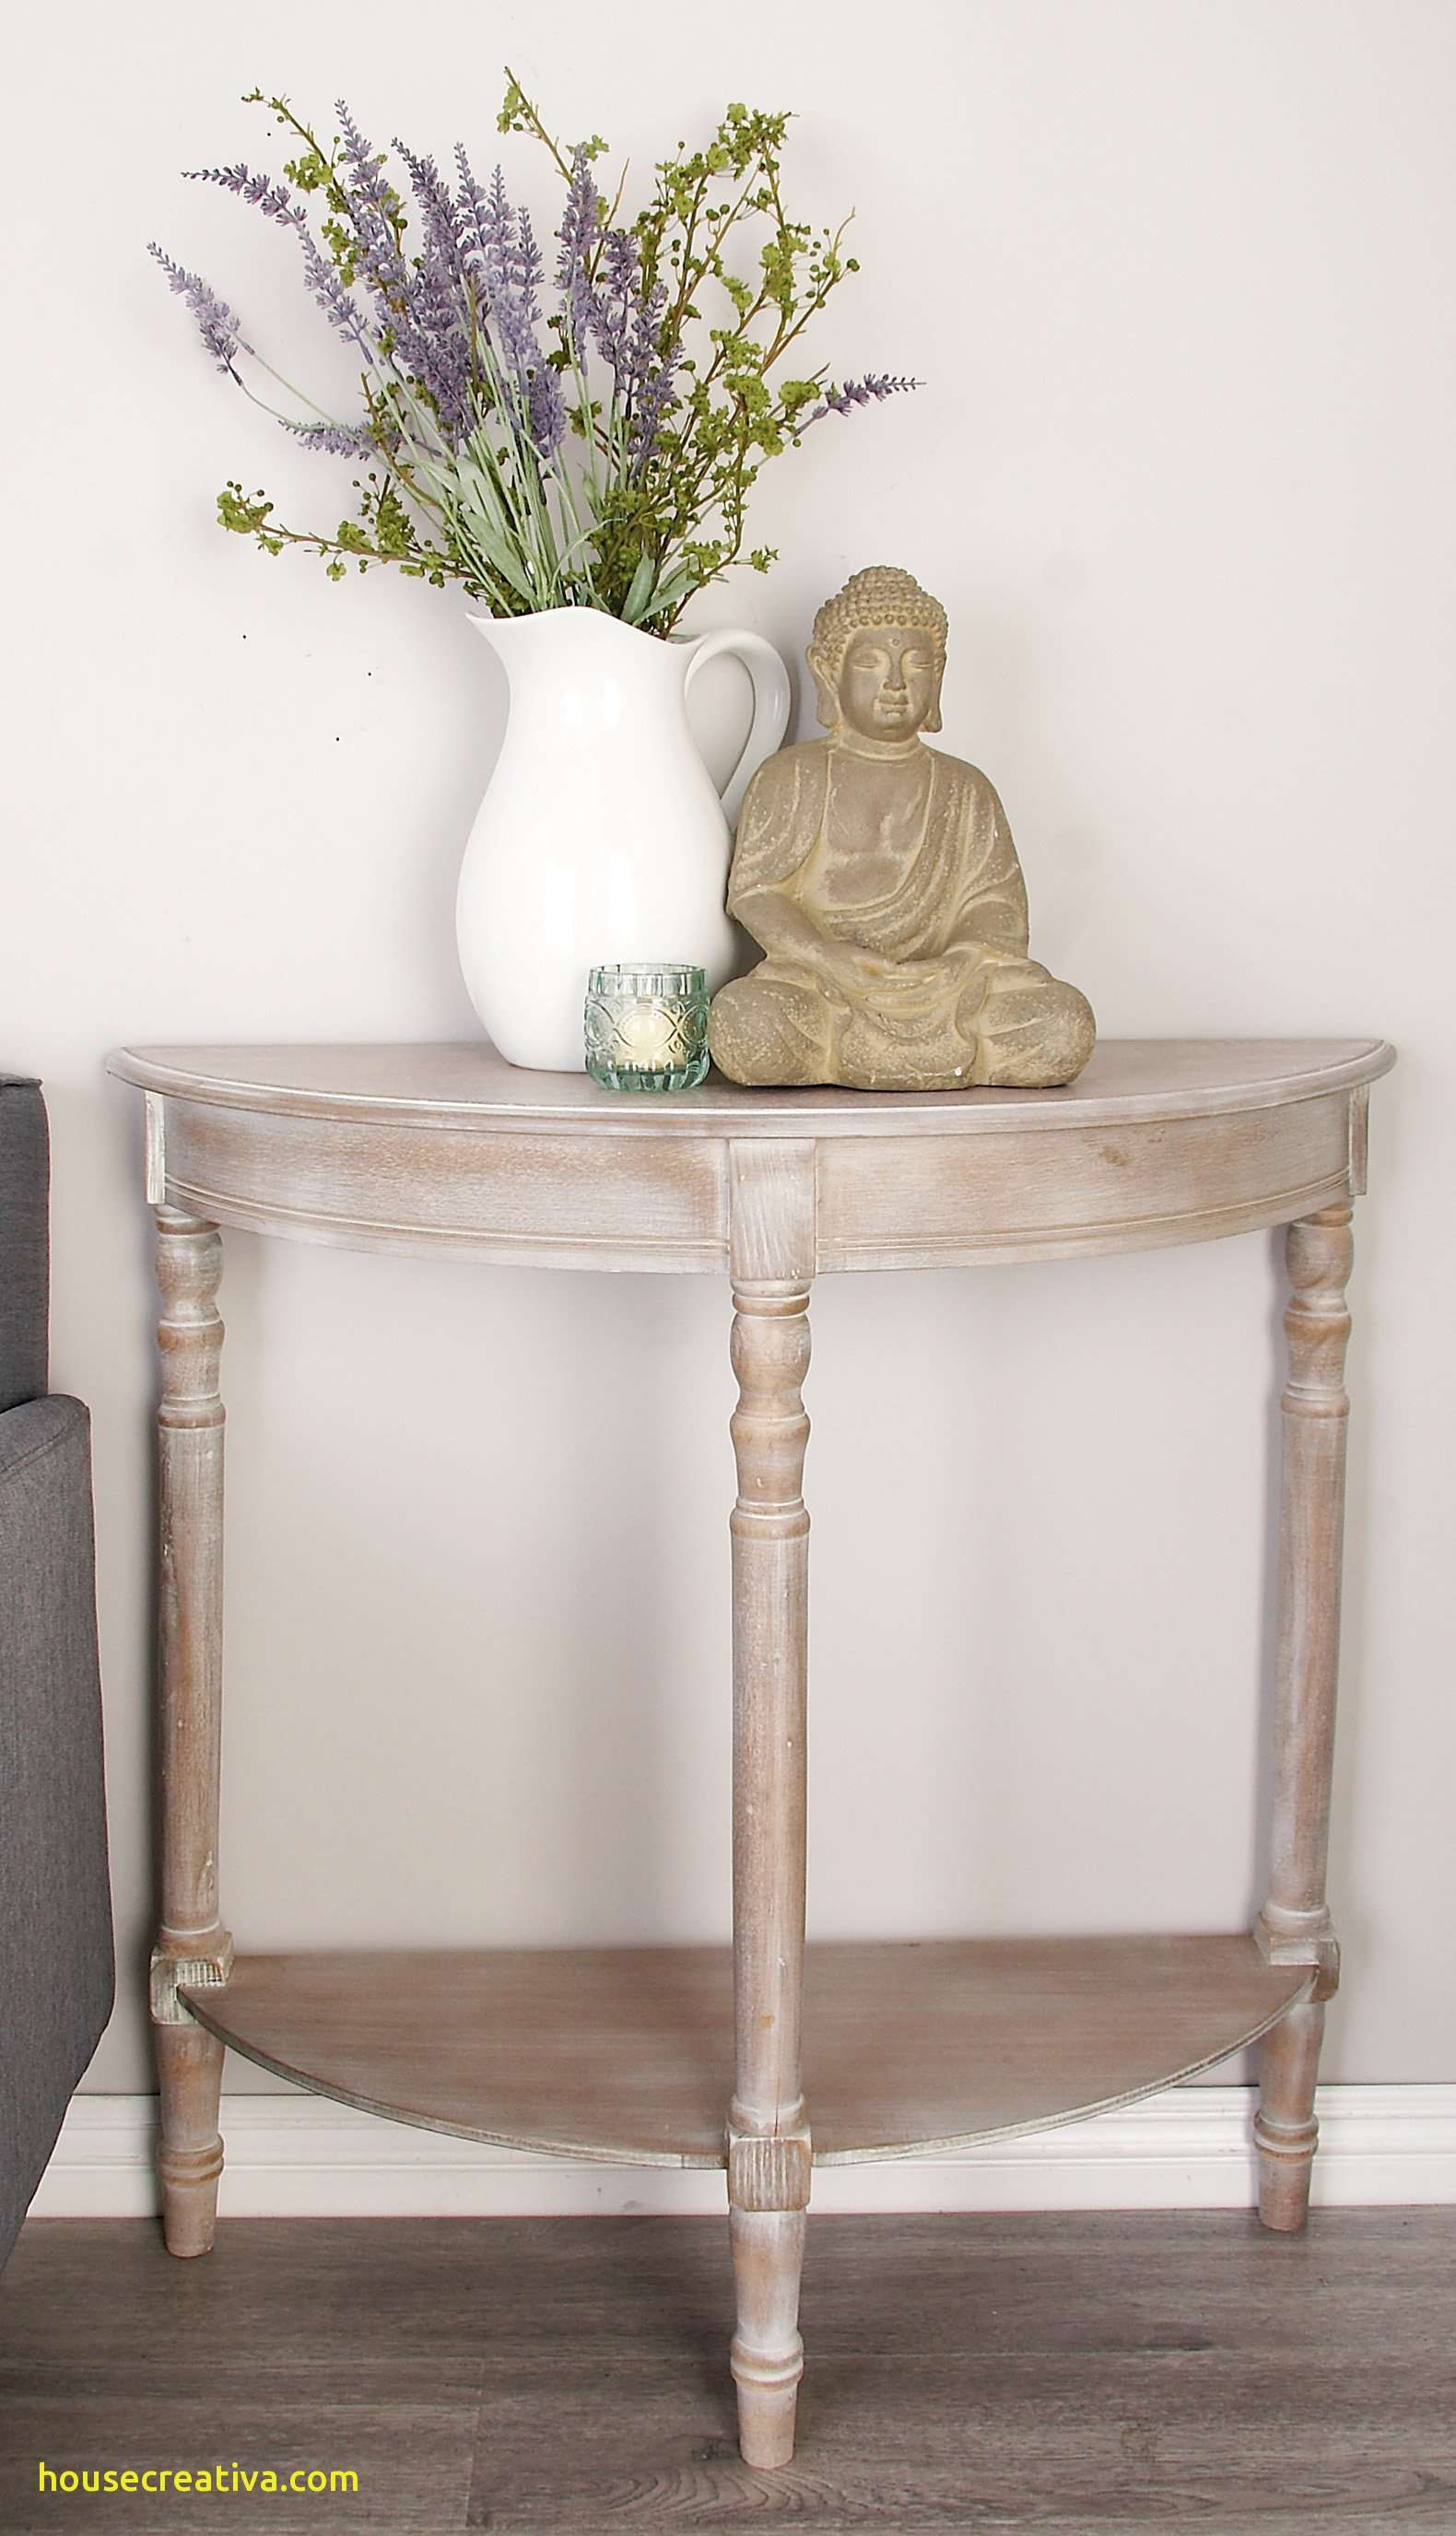 Best Of Half Moon Wall Mounted Table homedecoration